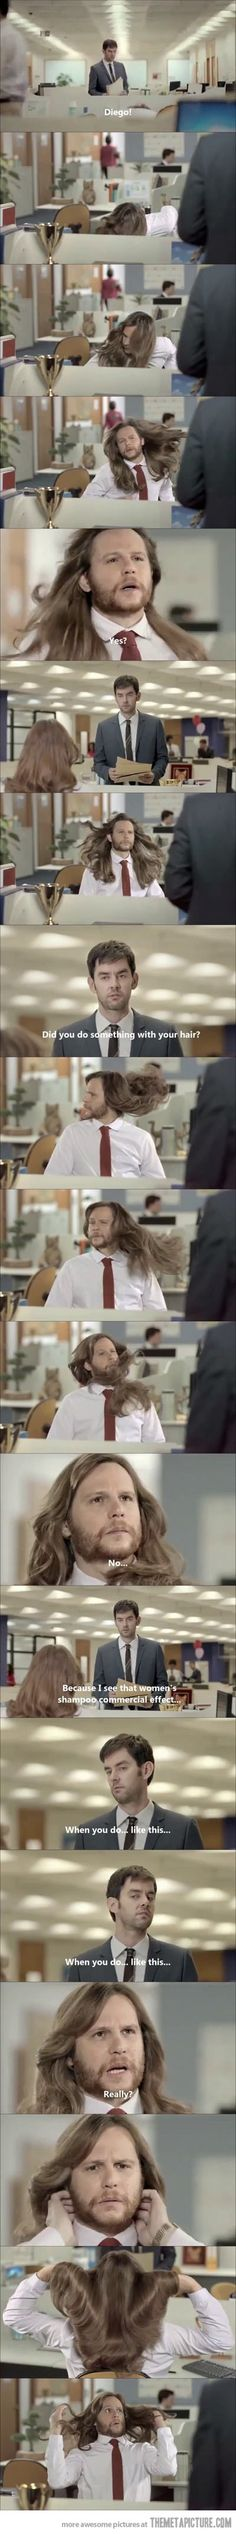 When men use women's shampoo - why is this so funny to me???